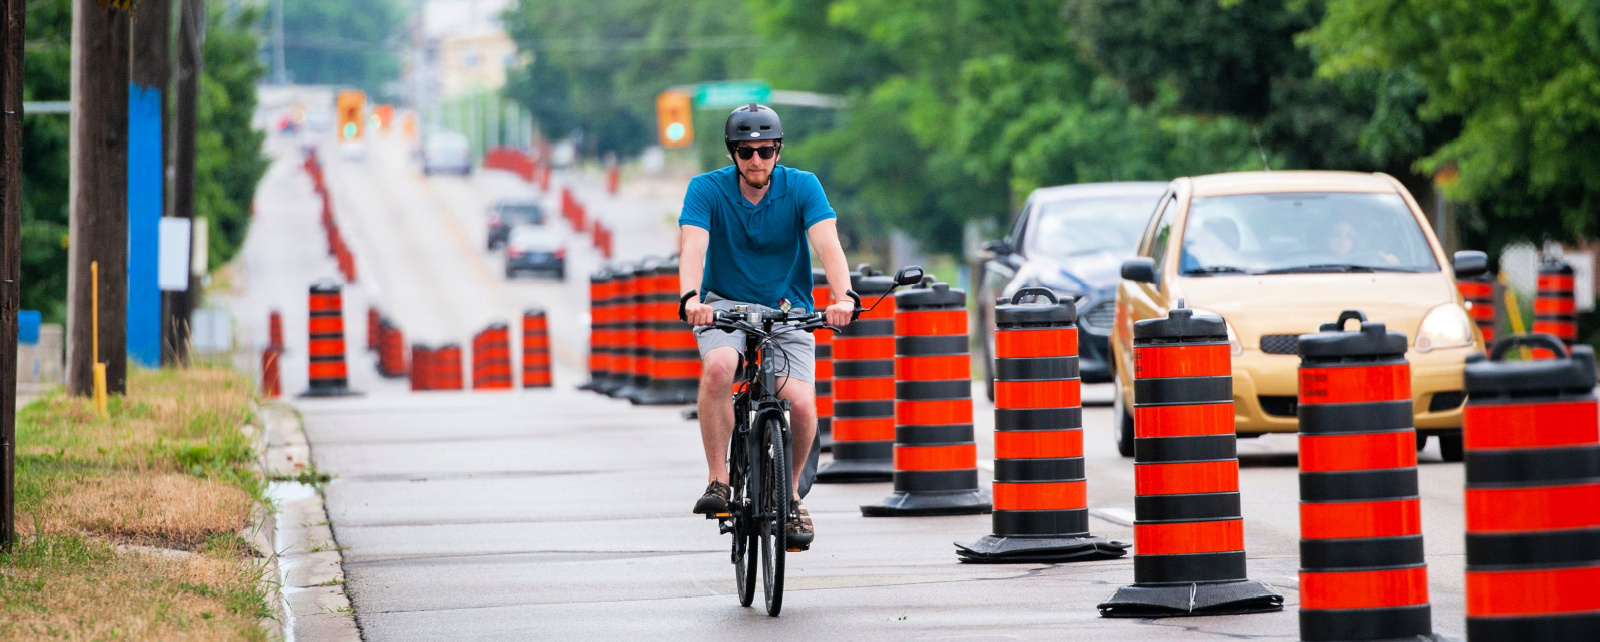 Cyclist riding in temporary bike lanes